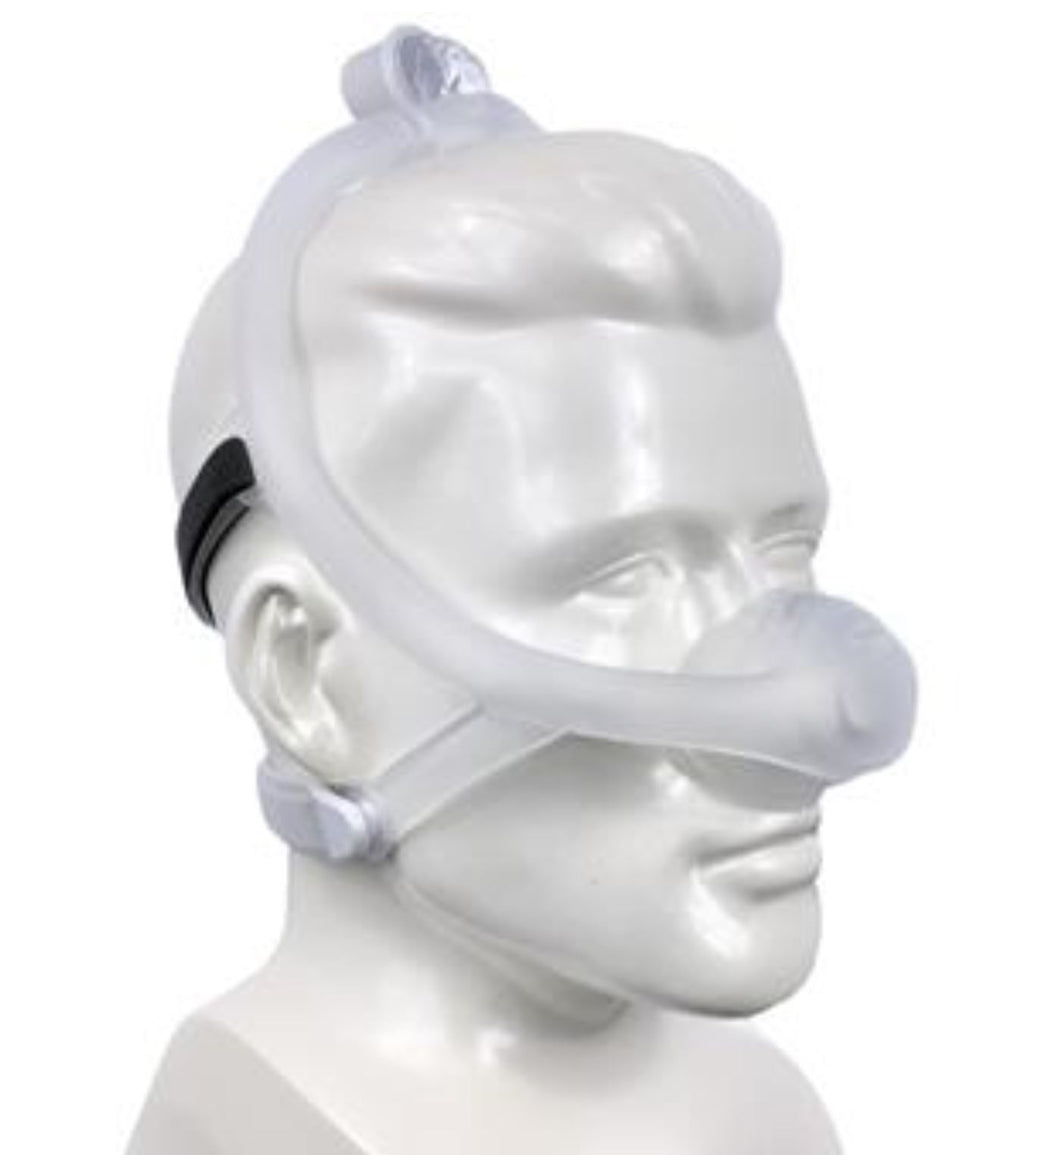 DreamWisp Nasal Fit-Pack (S, M, L included) CPAP Mask with Headgear by Philips Respironics